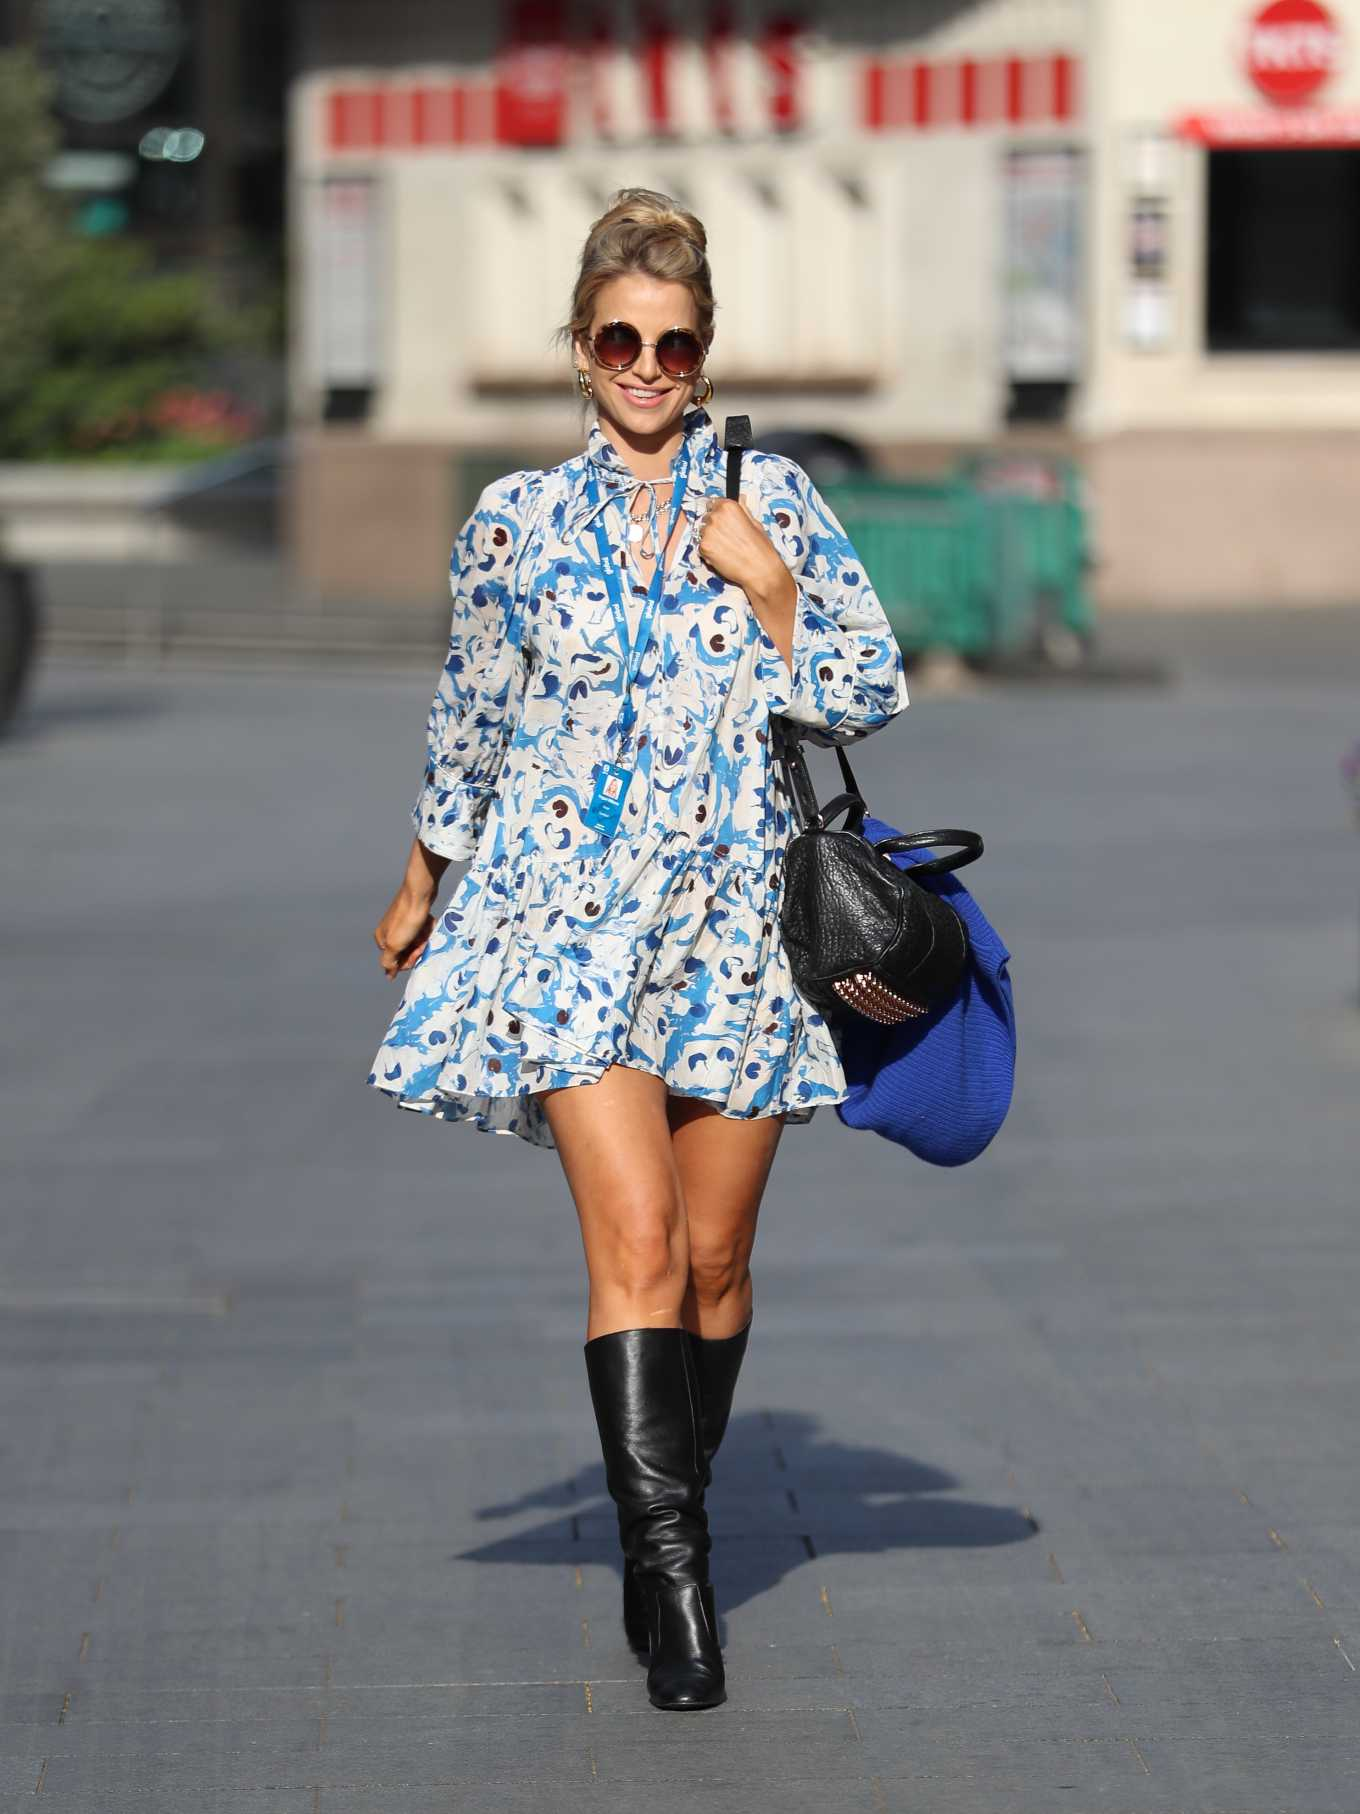 Vogue Williams - Spotted in summer dress in London